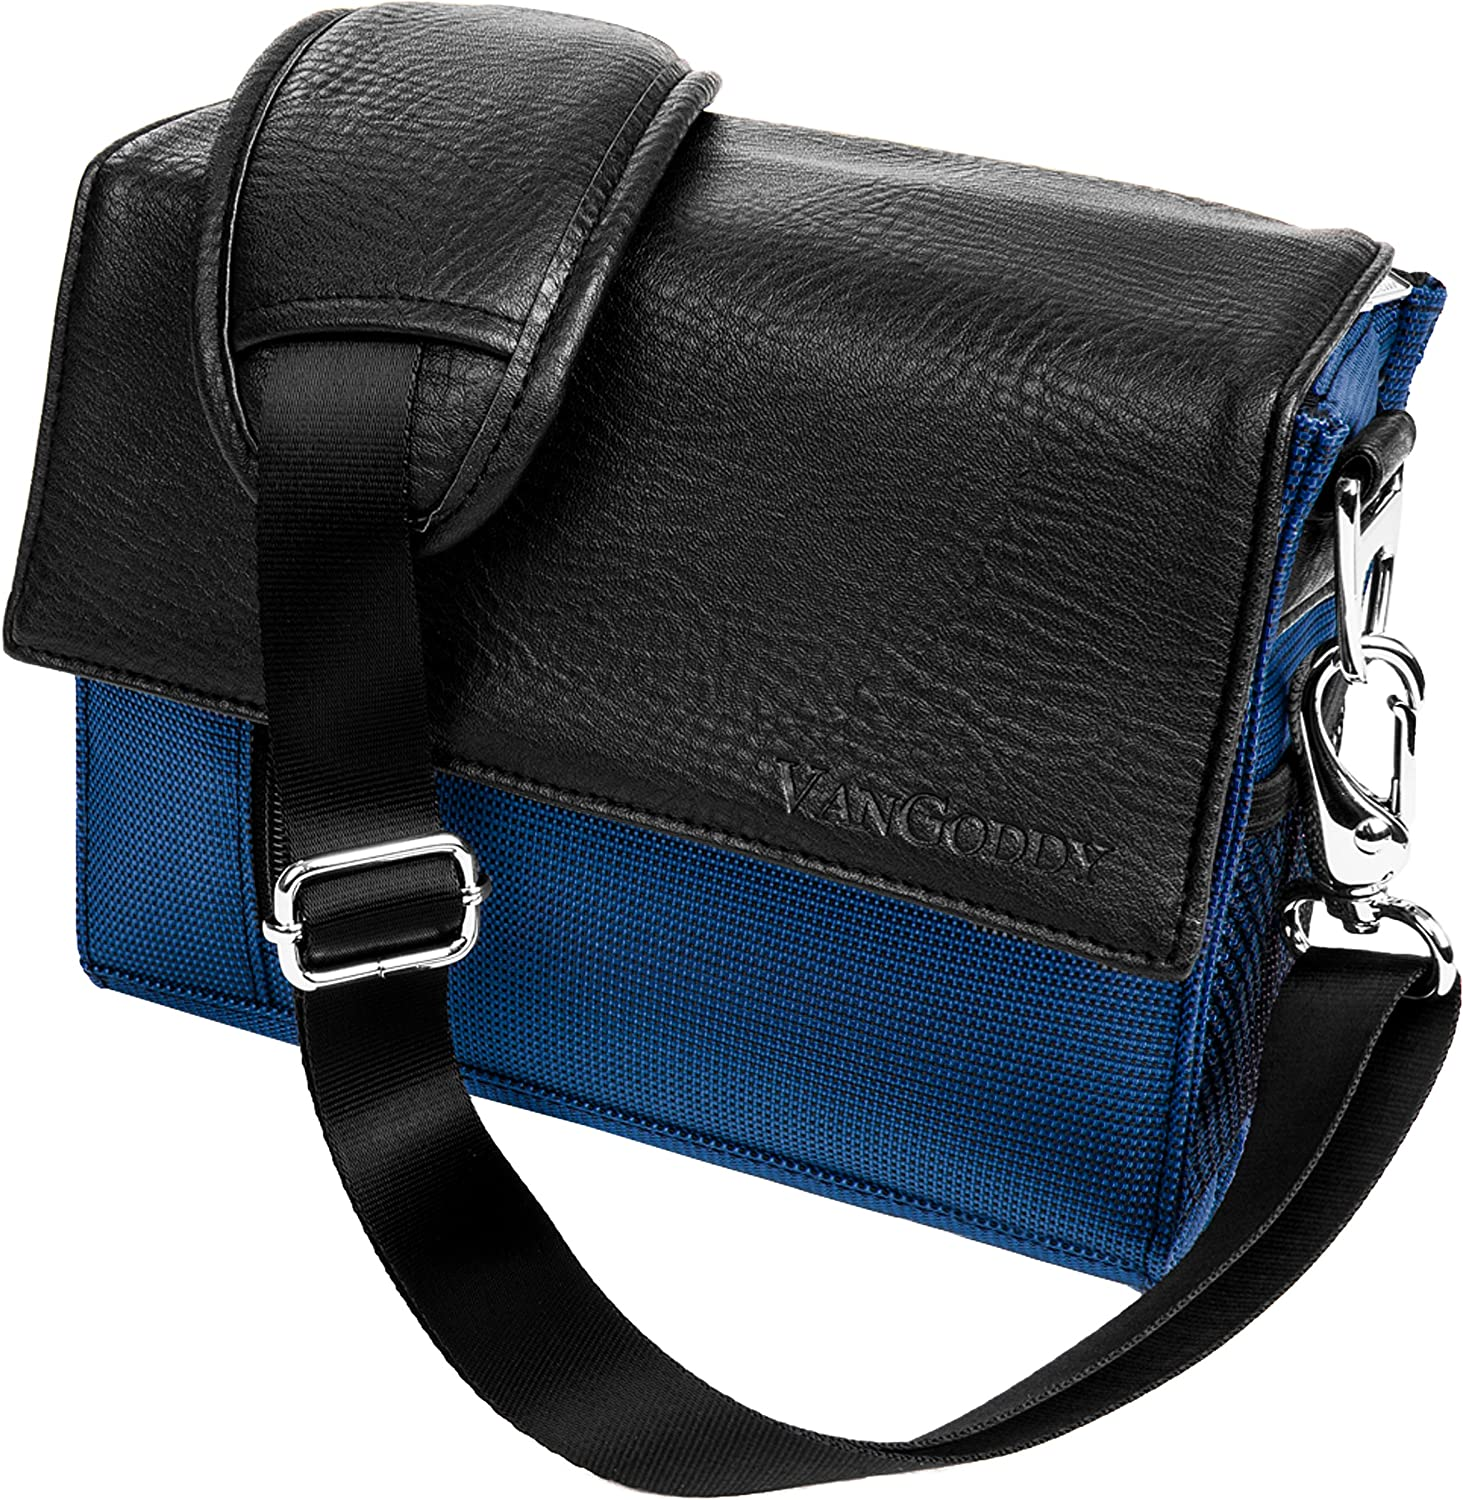 Navy Blue Crossbody Shoulder Camera Carrying Case Bag for Nikon Z50 Z7 Z6, D DL CoolPix Series